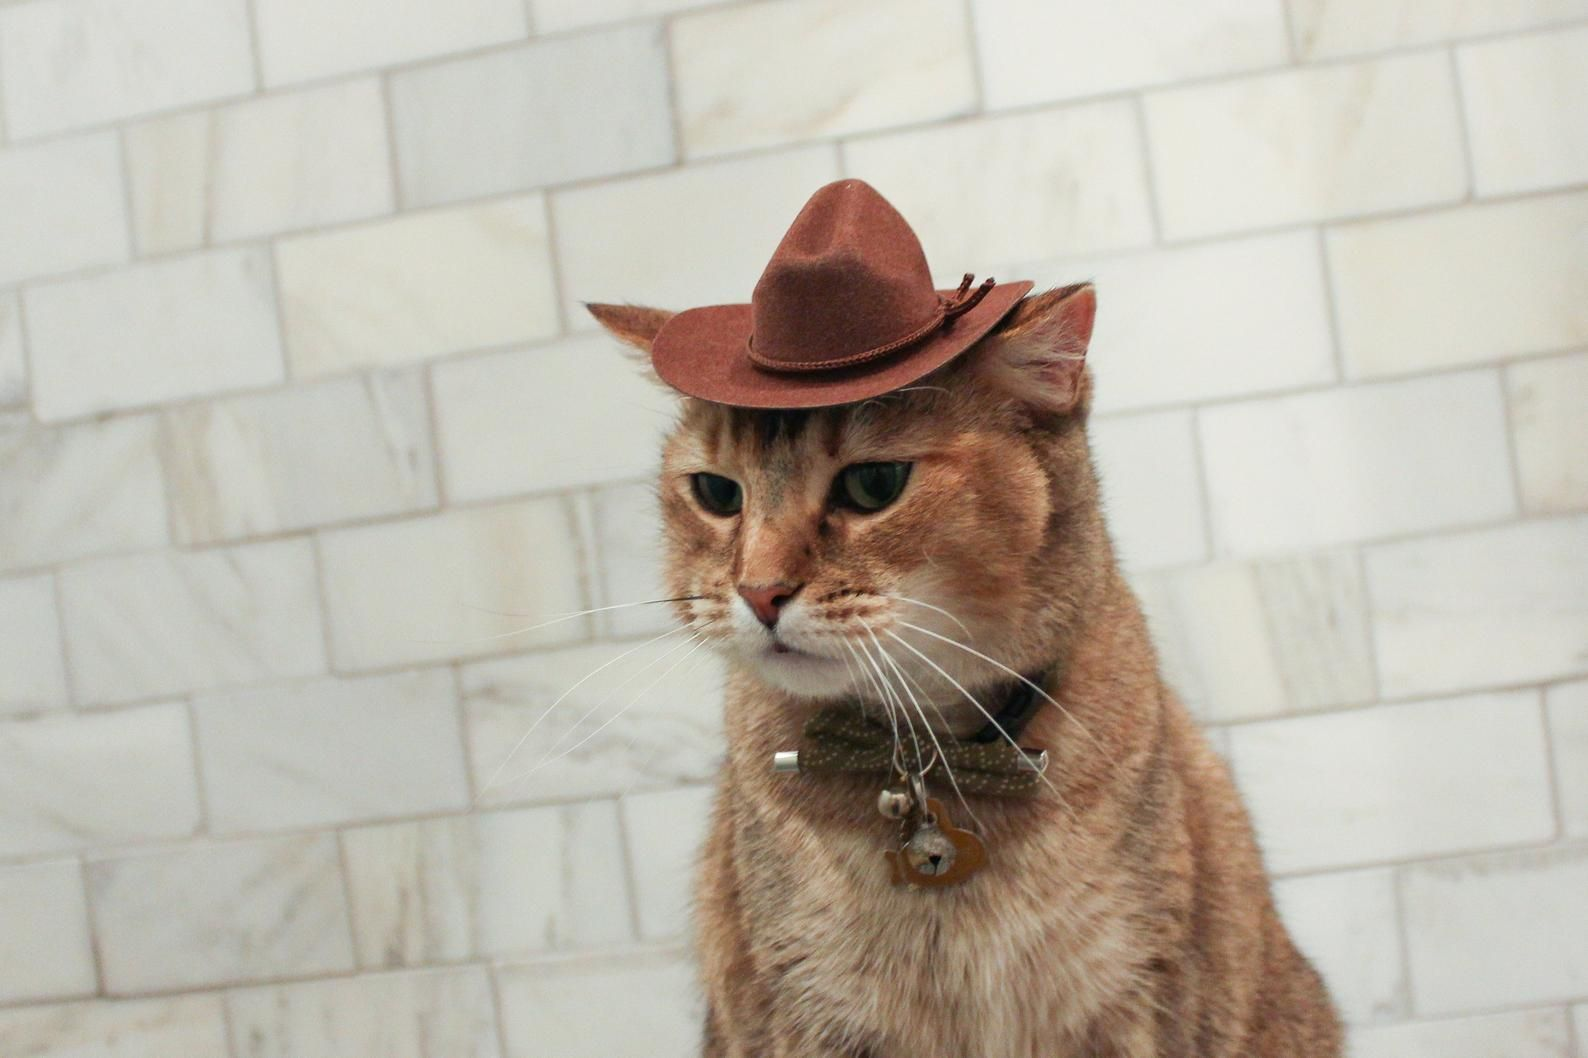 Brown Cowboy Cat Hat Free Shipping In 2021 Cat Hat Cat Accessories Cat Aesthetic